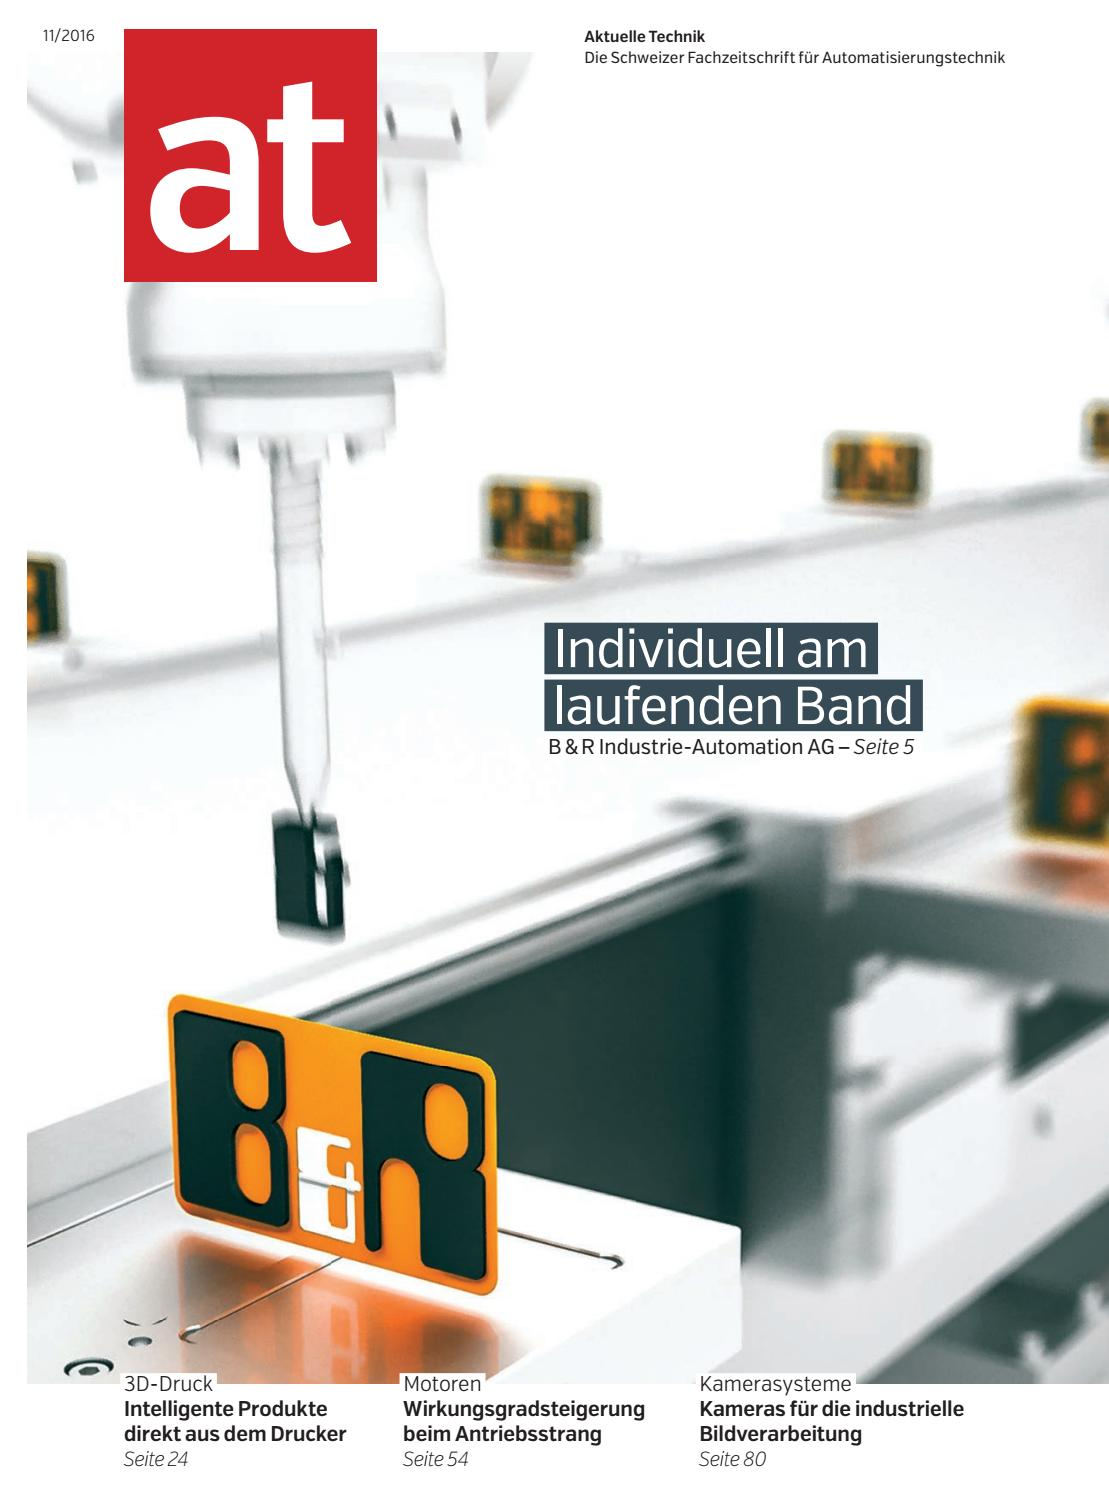 at - Aktuelle Technik 11 2016 by BL Verlag AG - issuu